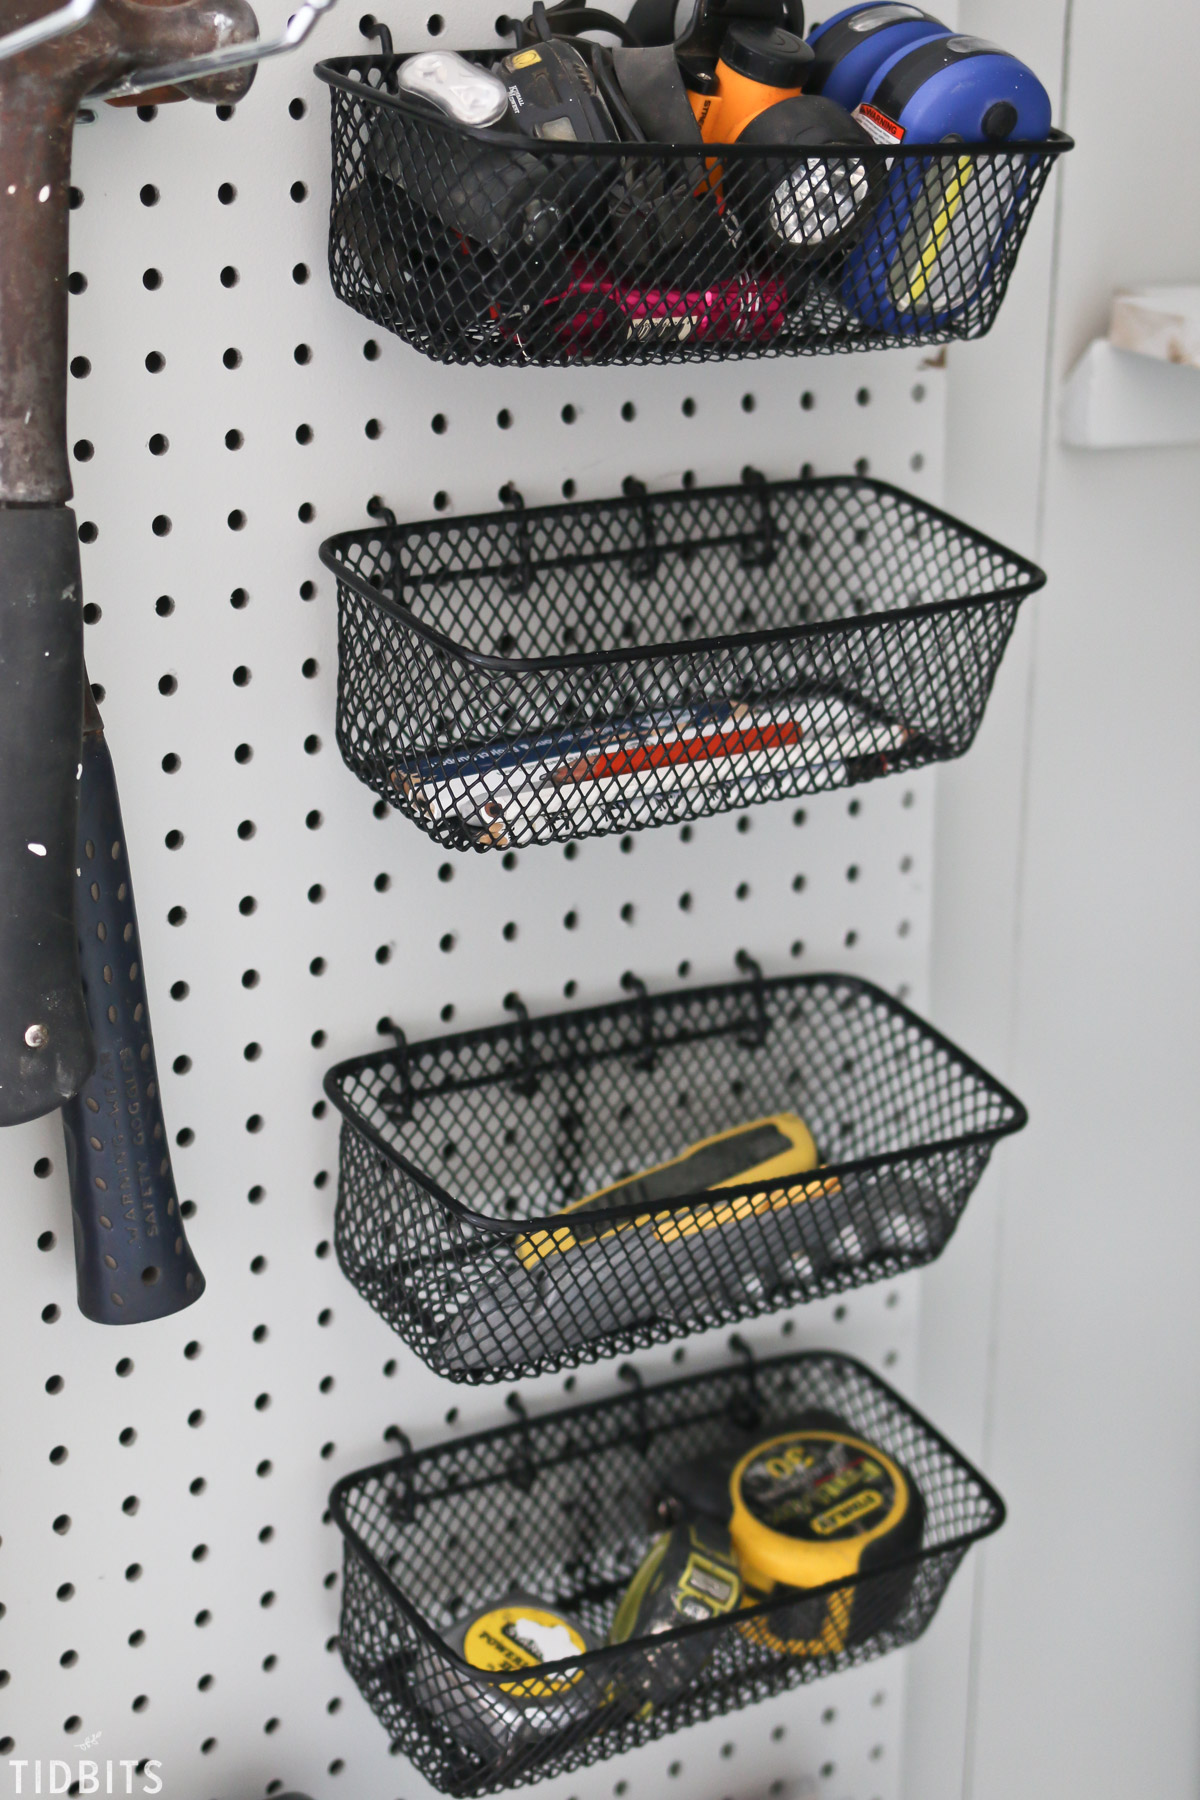 baskkets on pegboard